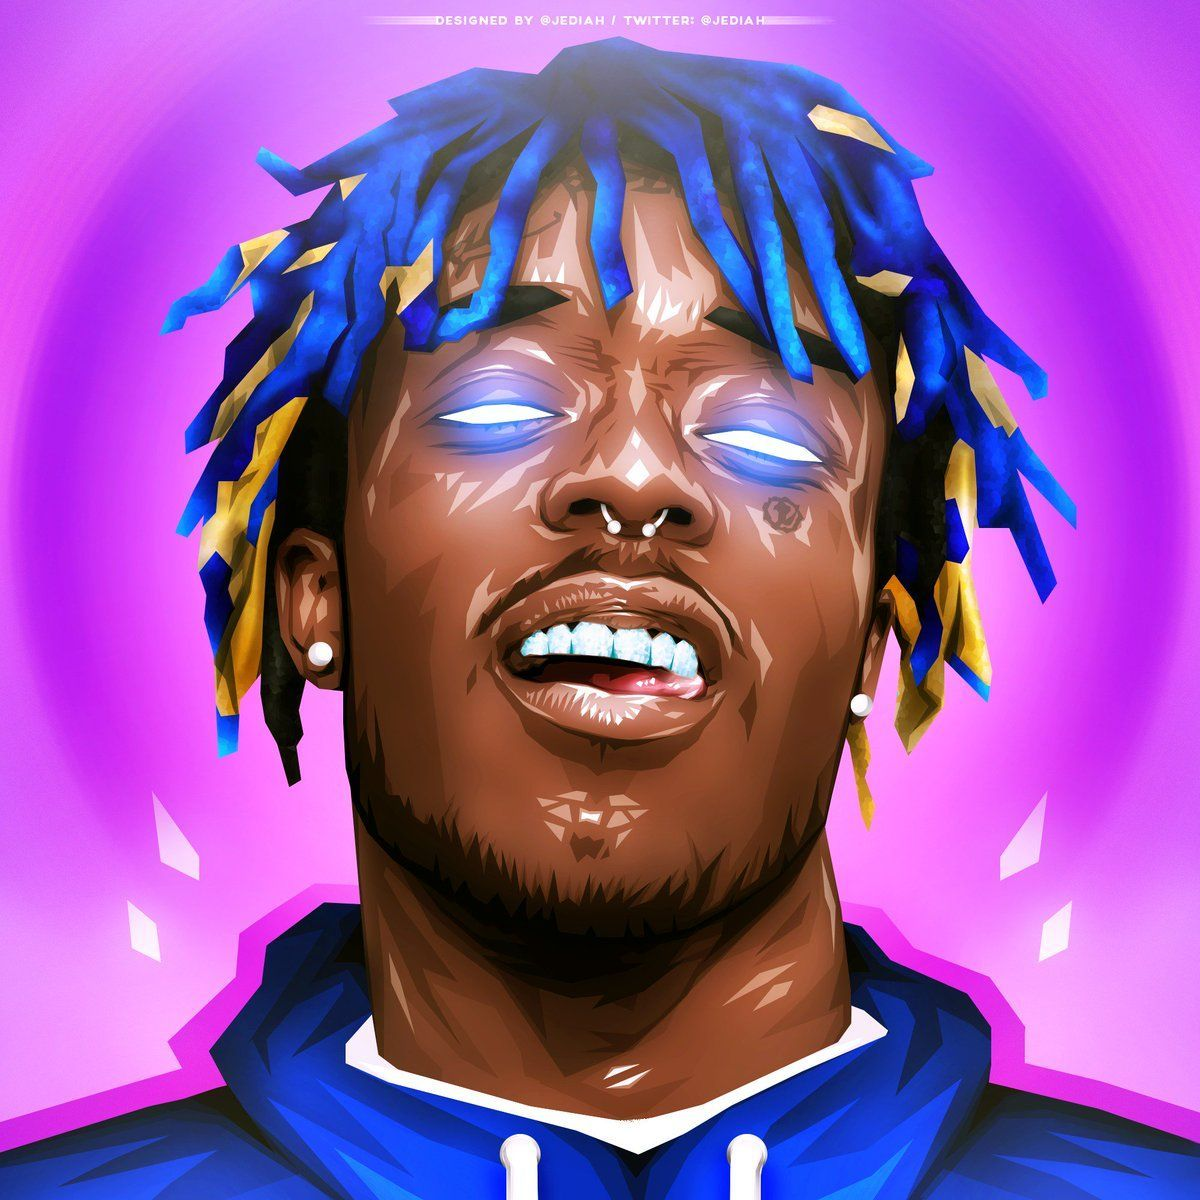 Lil Uzi Vert Wallpaper Kolpaper Awesome Free Hd Wallpapers